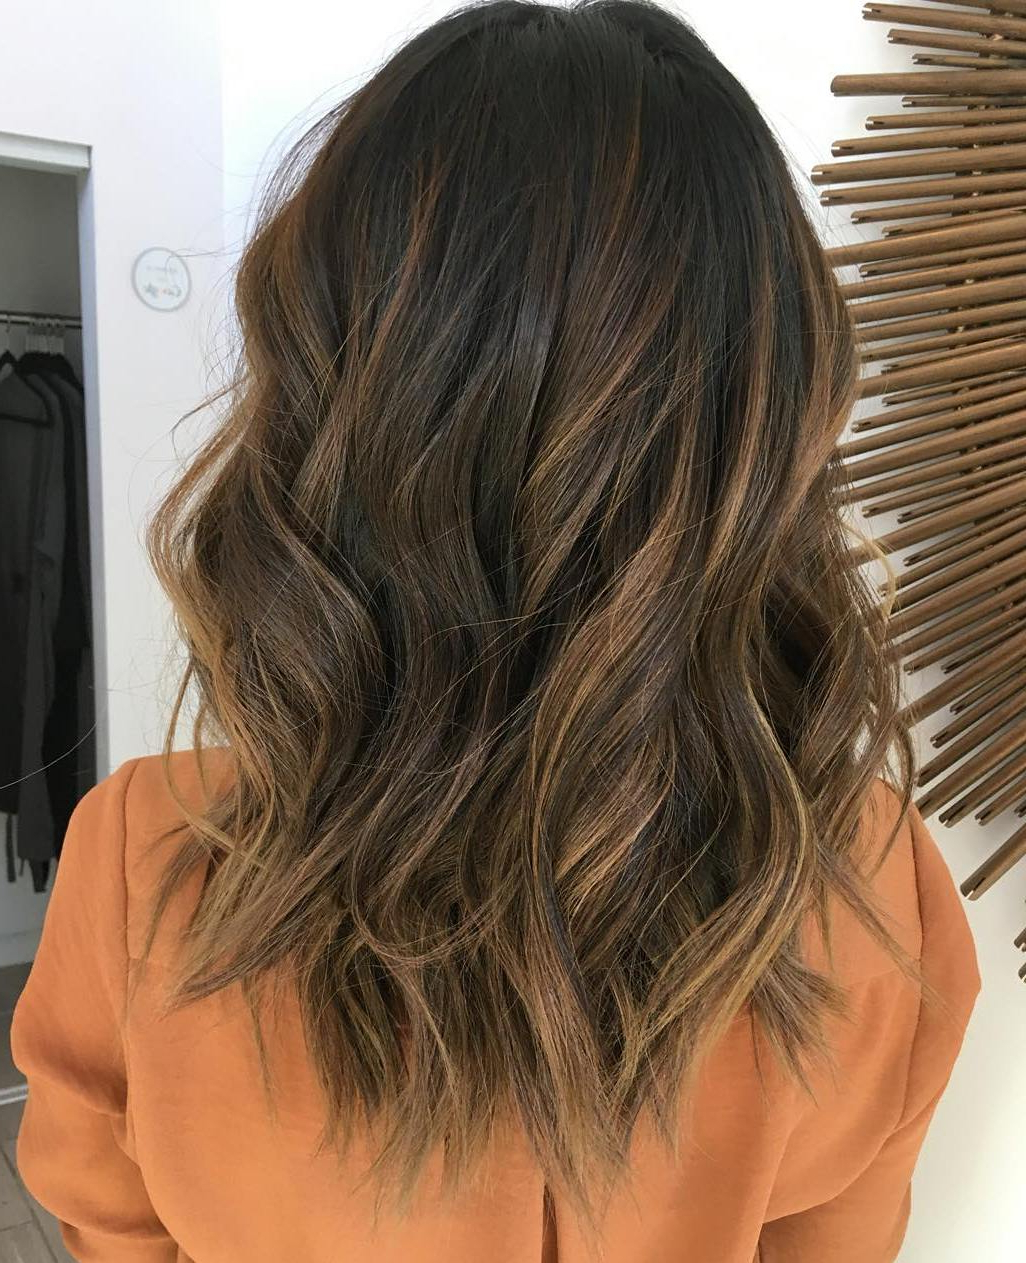 5 Medium Dark Brown Hair With Caramel Balayage – Menhairdos In Most Up To Date Easy Side Downdo Hairstyles With Caramel Highlights (View 3 of 20)